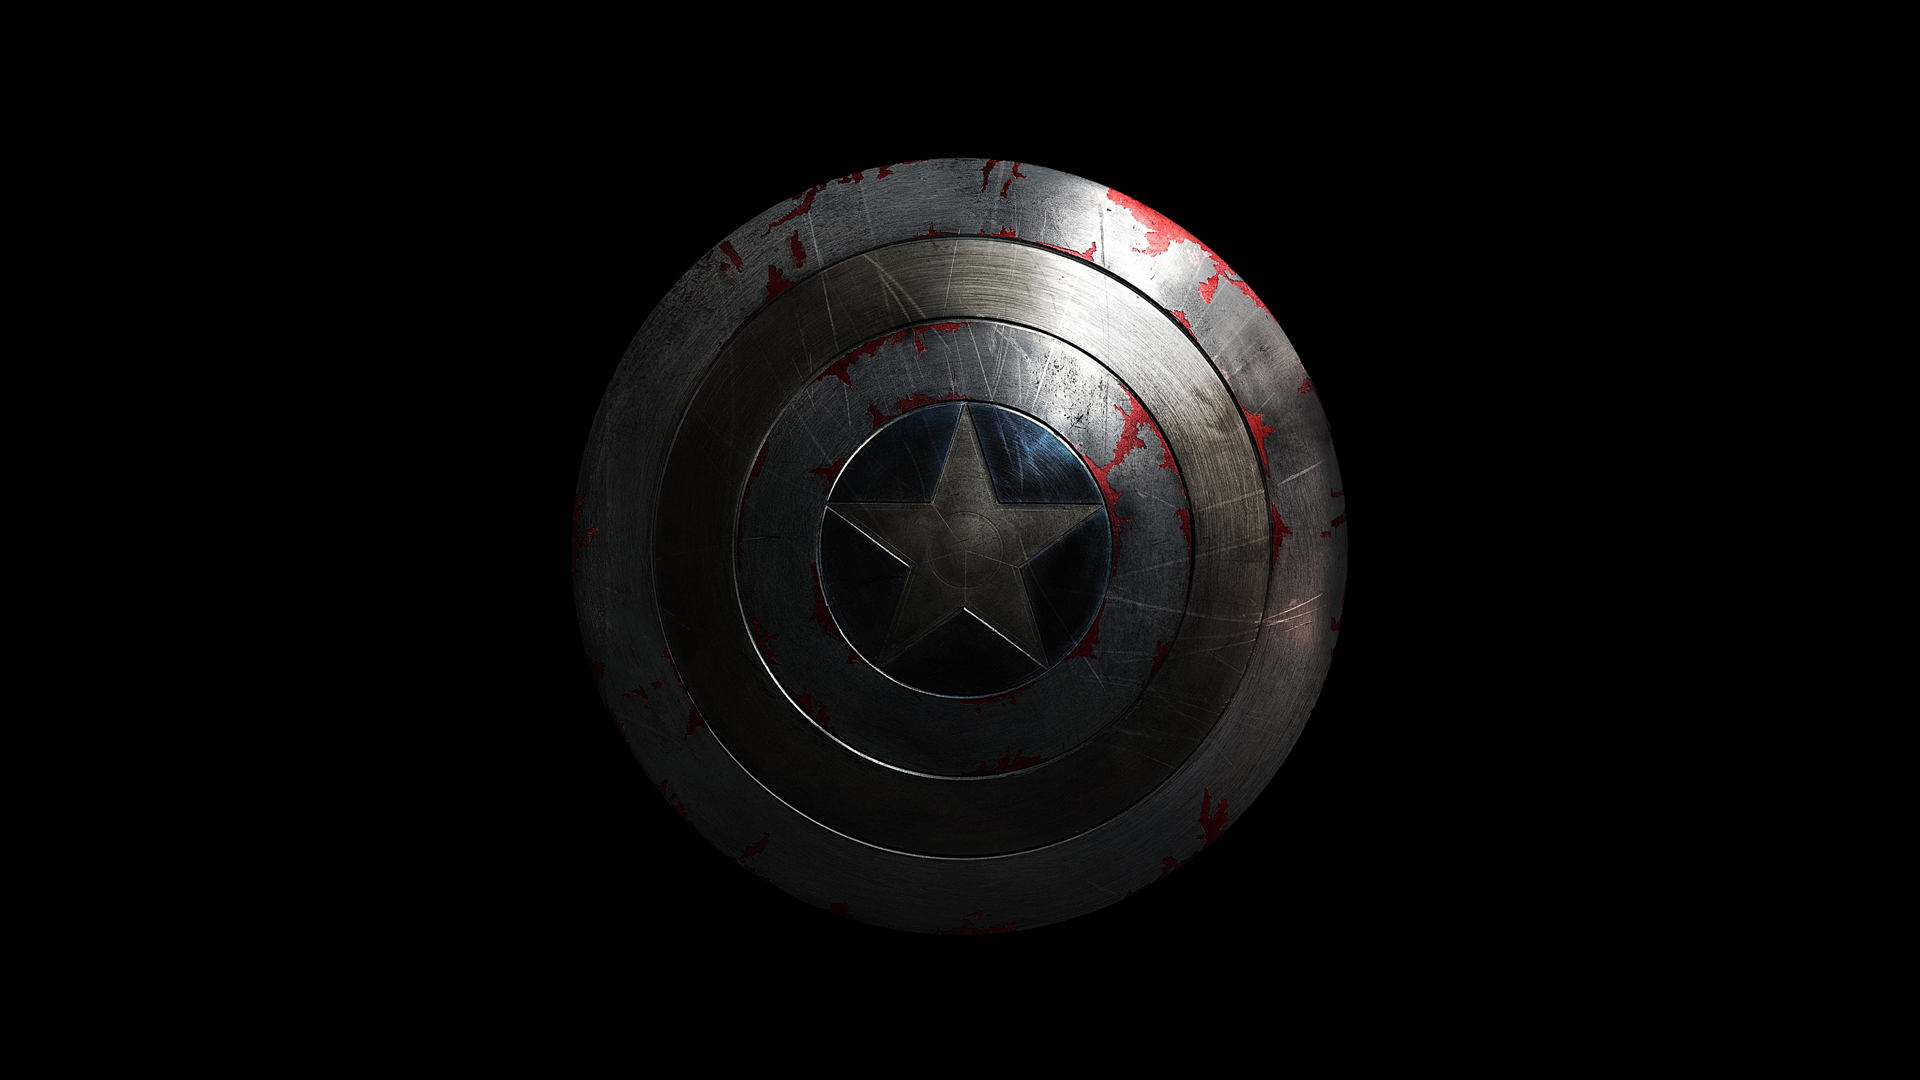 Captain-America-Free-Download-wallpaper-wpc5803240